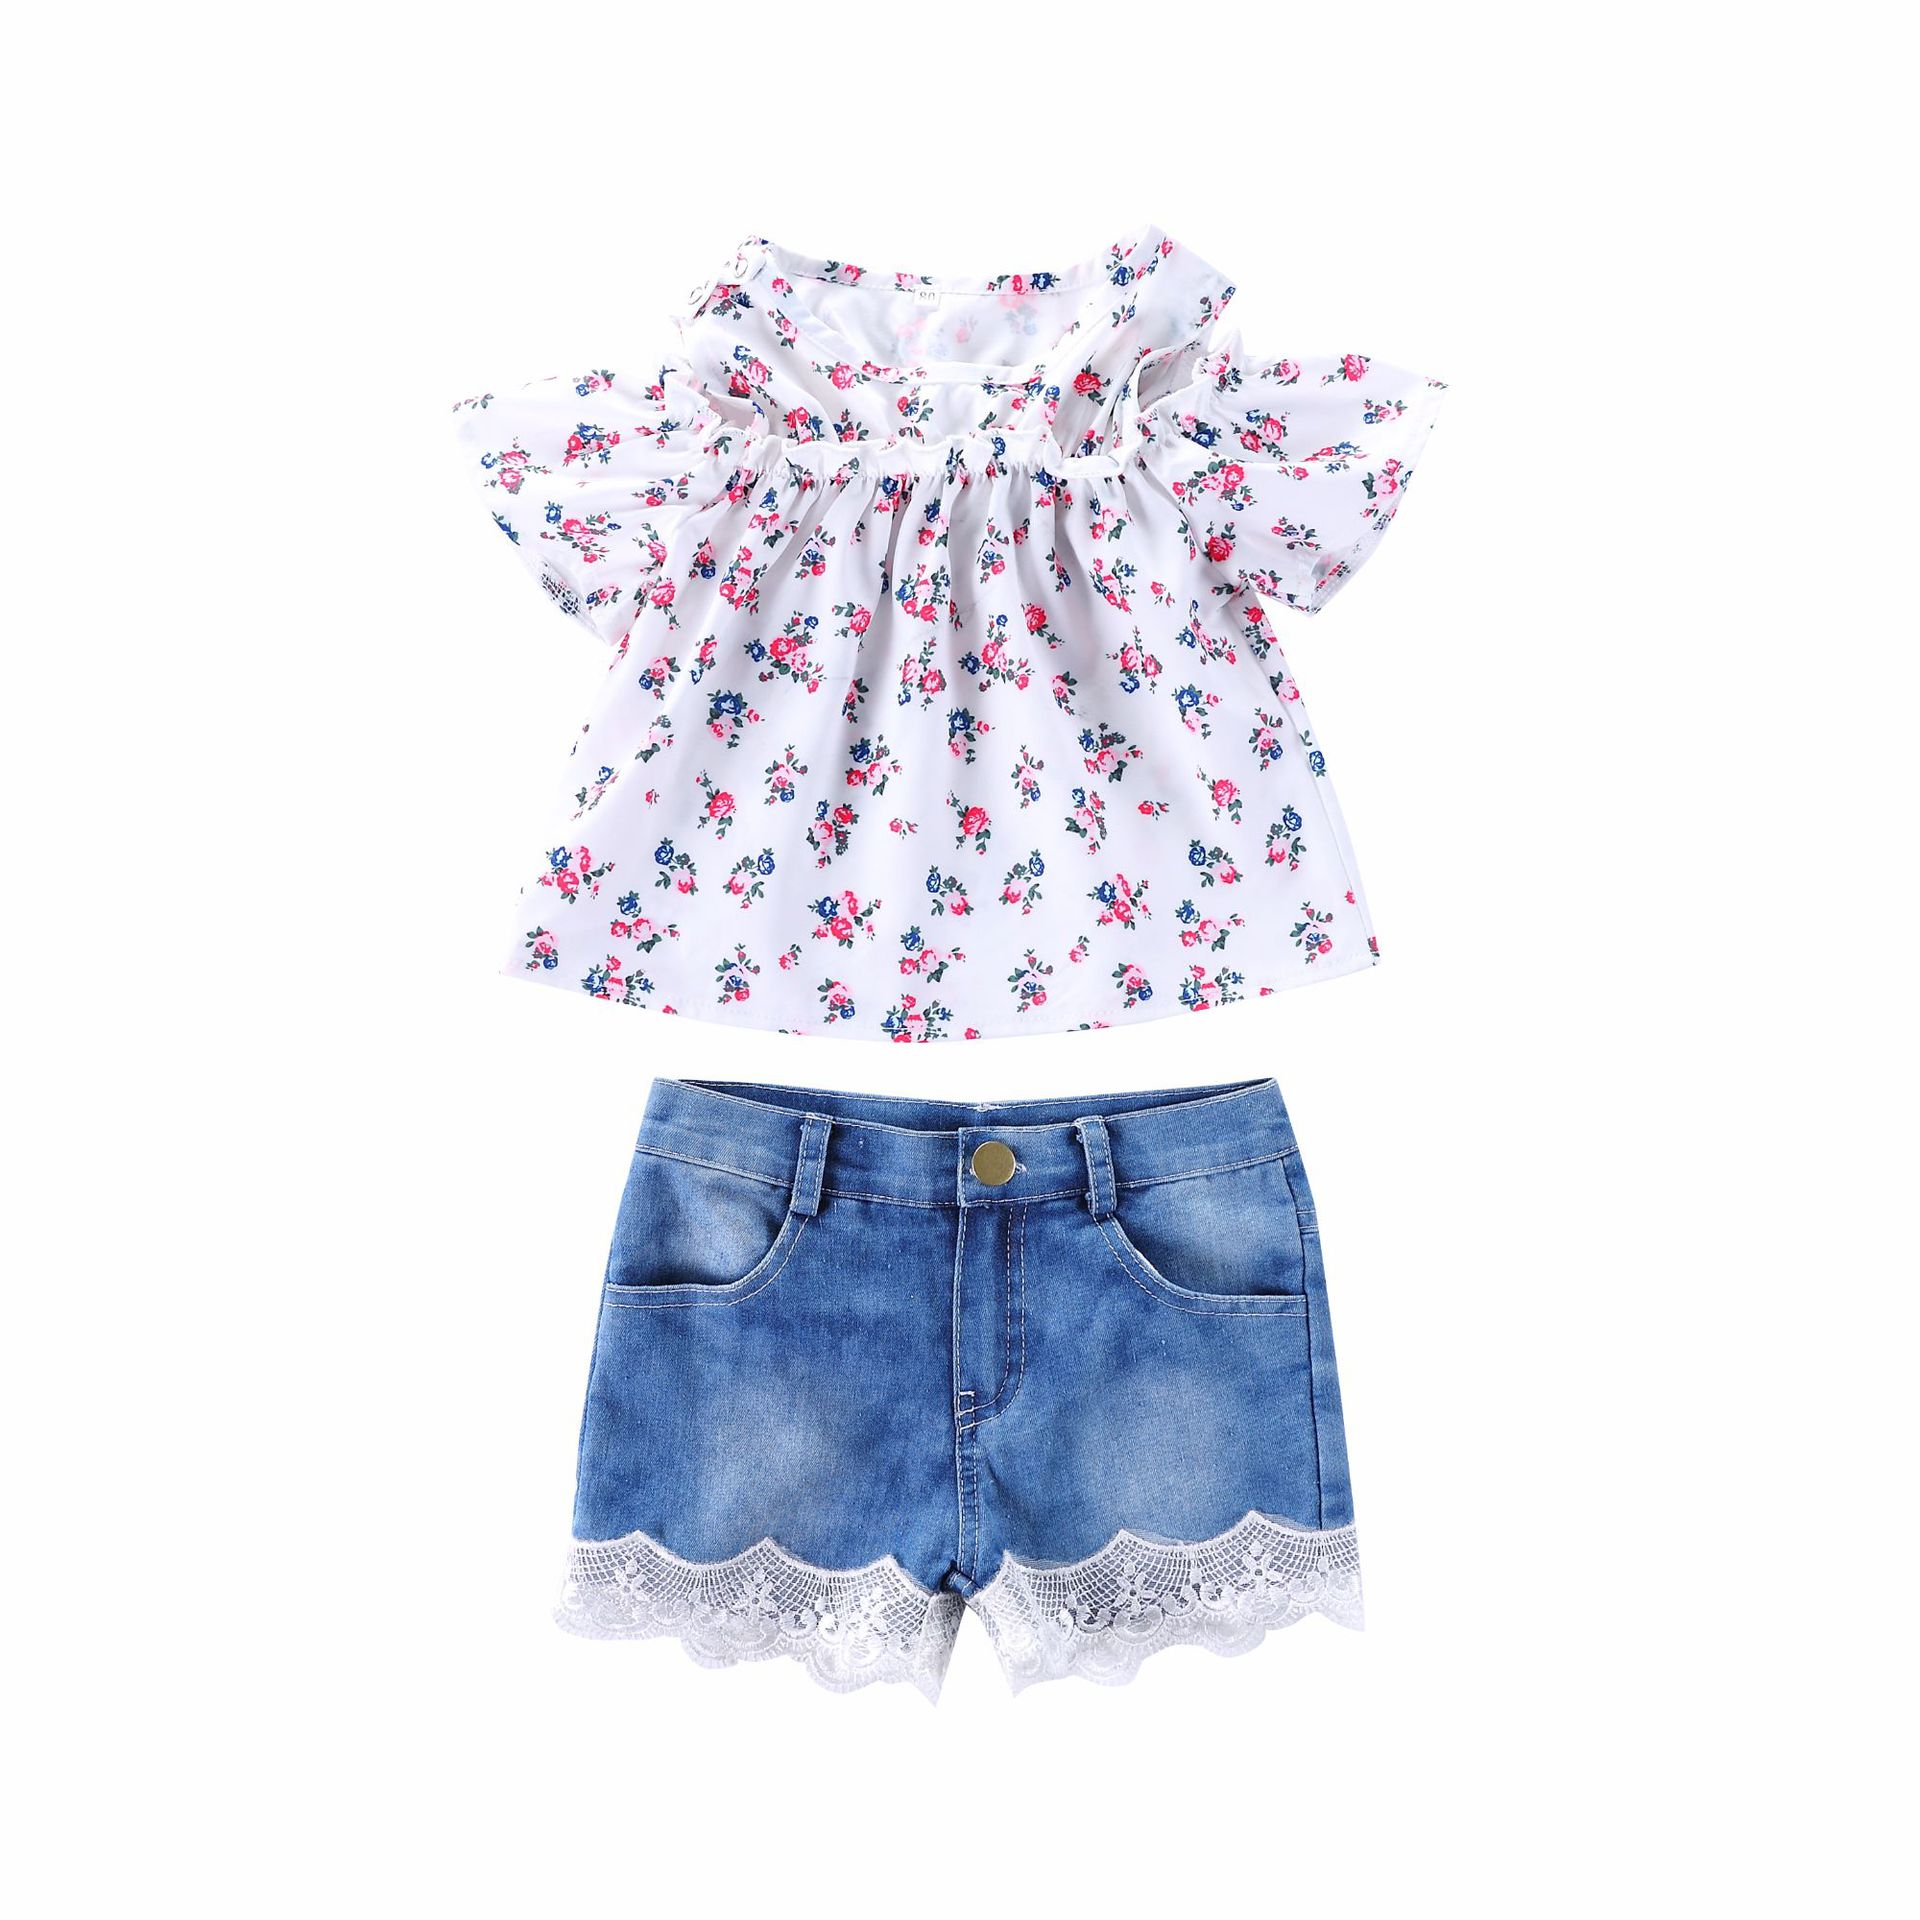 Toddle kids girl outfits set Flower Printed Top+Lace Denim Shorts suit for girls baby clothing